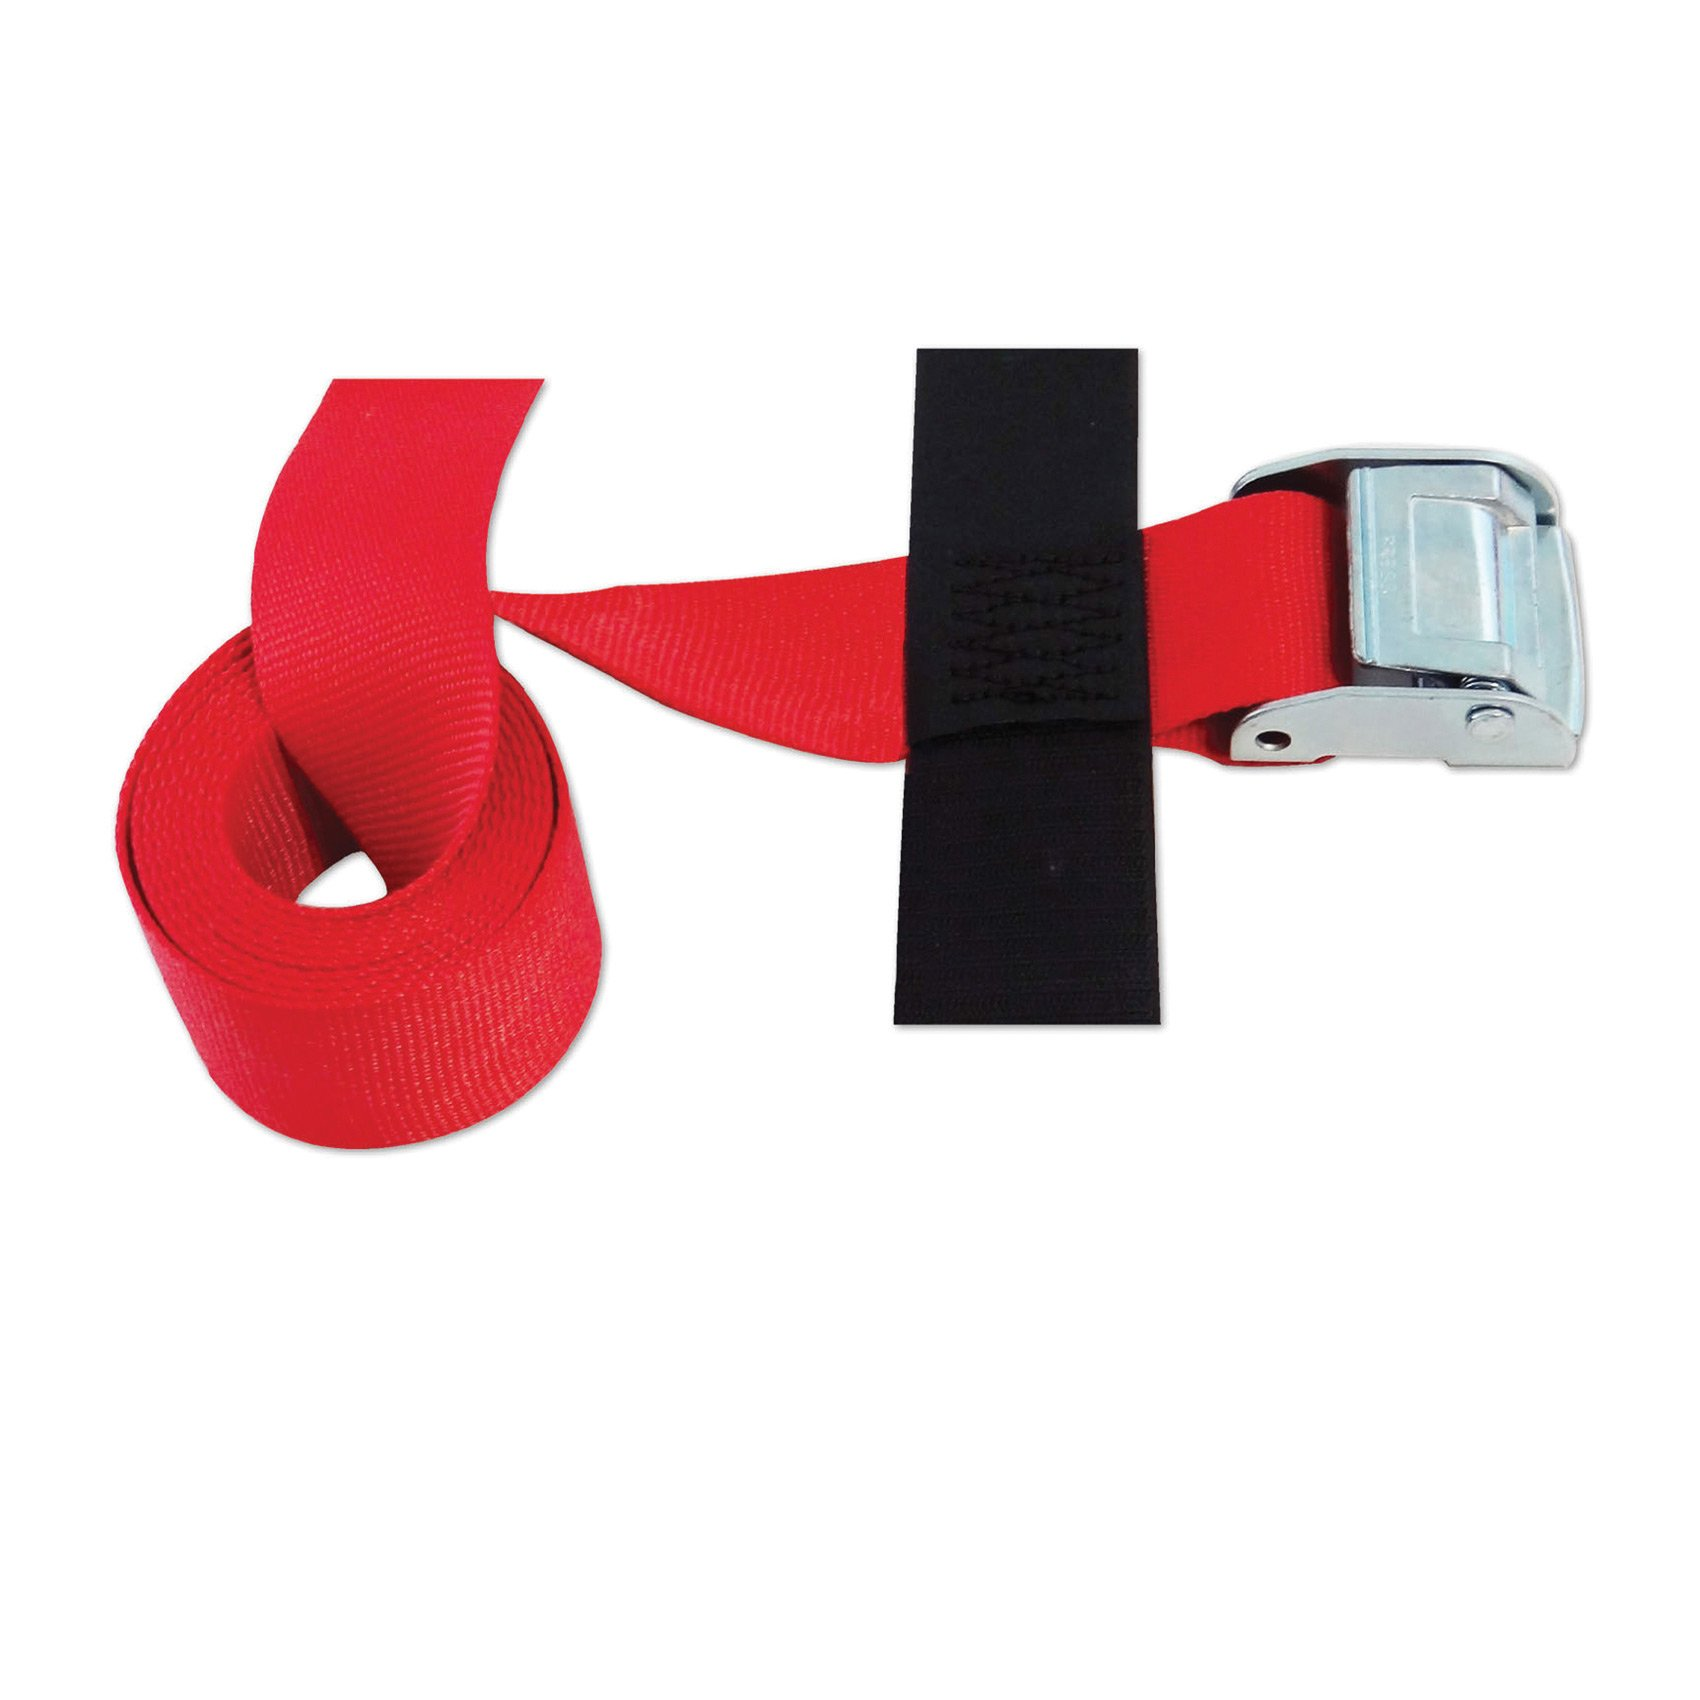 CINCH STRAP 2''x8' CAM (USA!) with Hook & Loop storage fastener